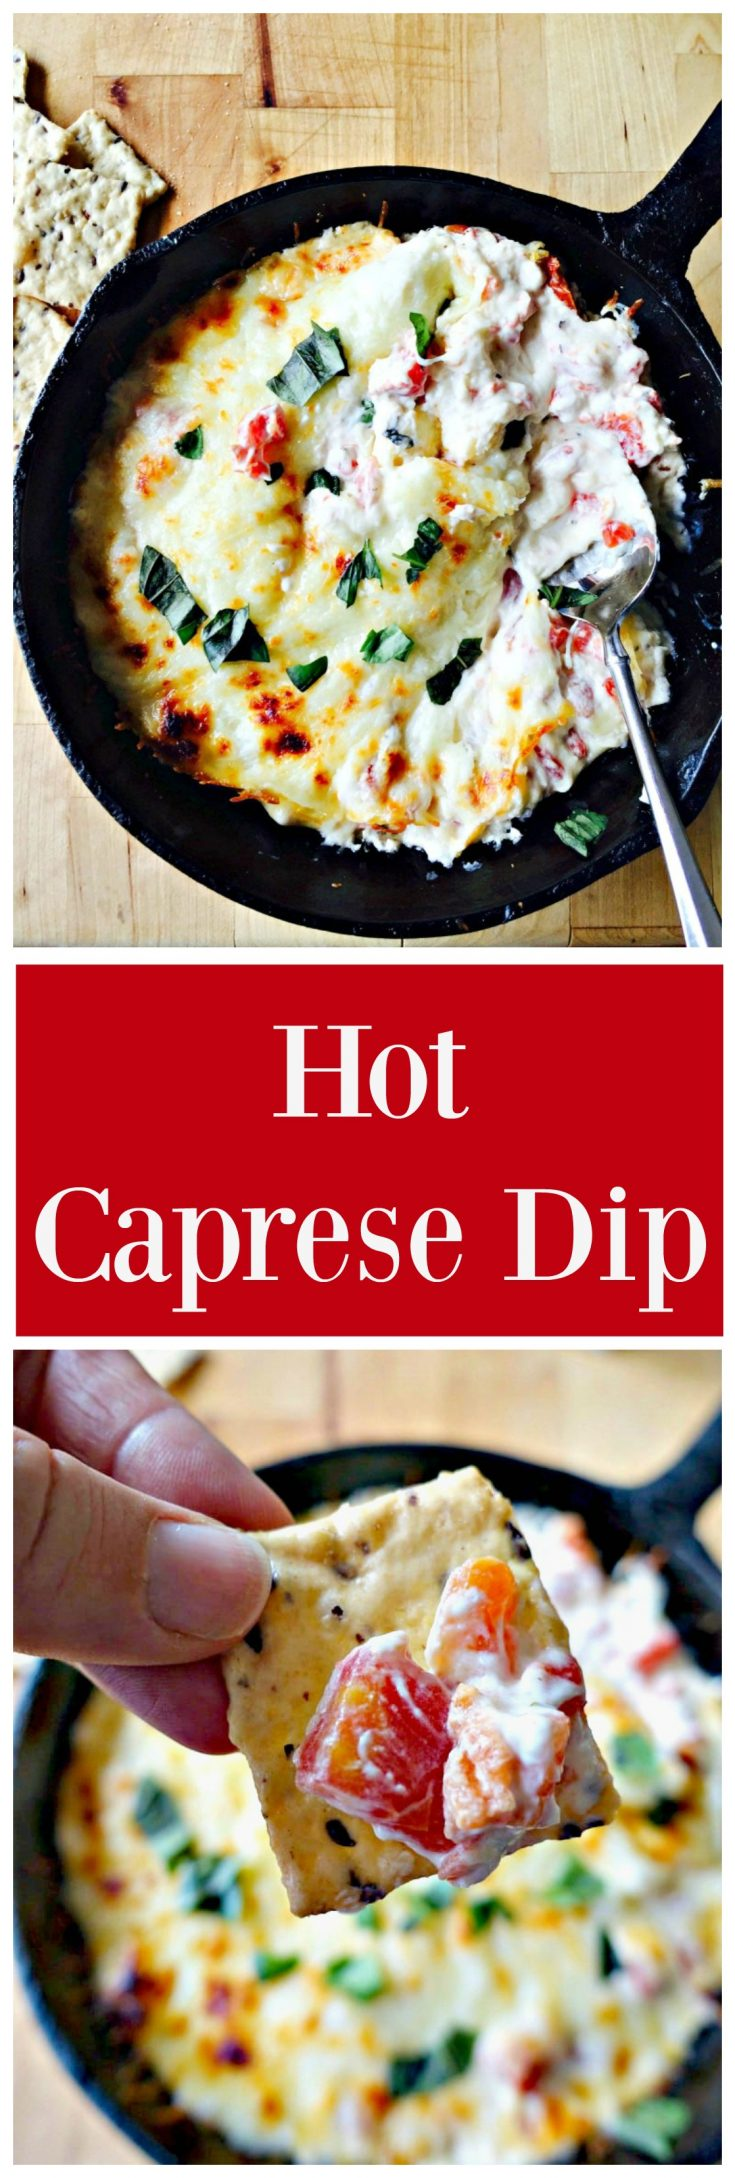 This Hot Caprese Dip is like a little taste of Italy in one delicious appetizer.